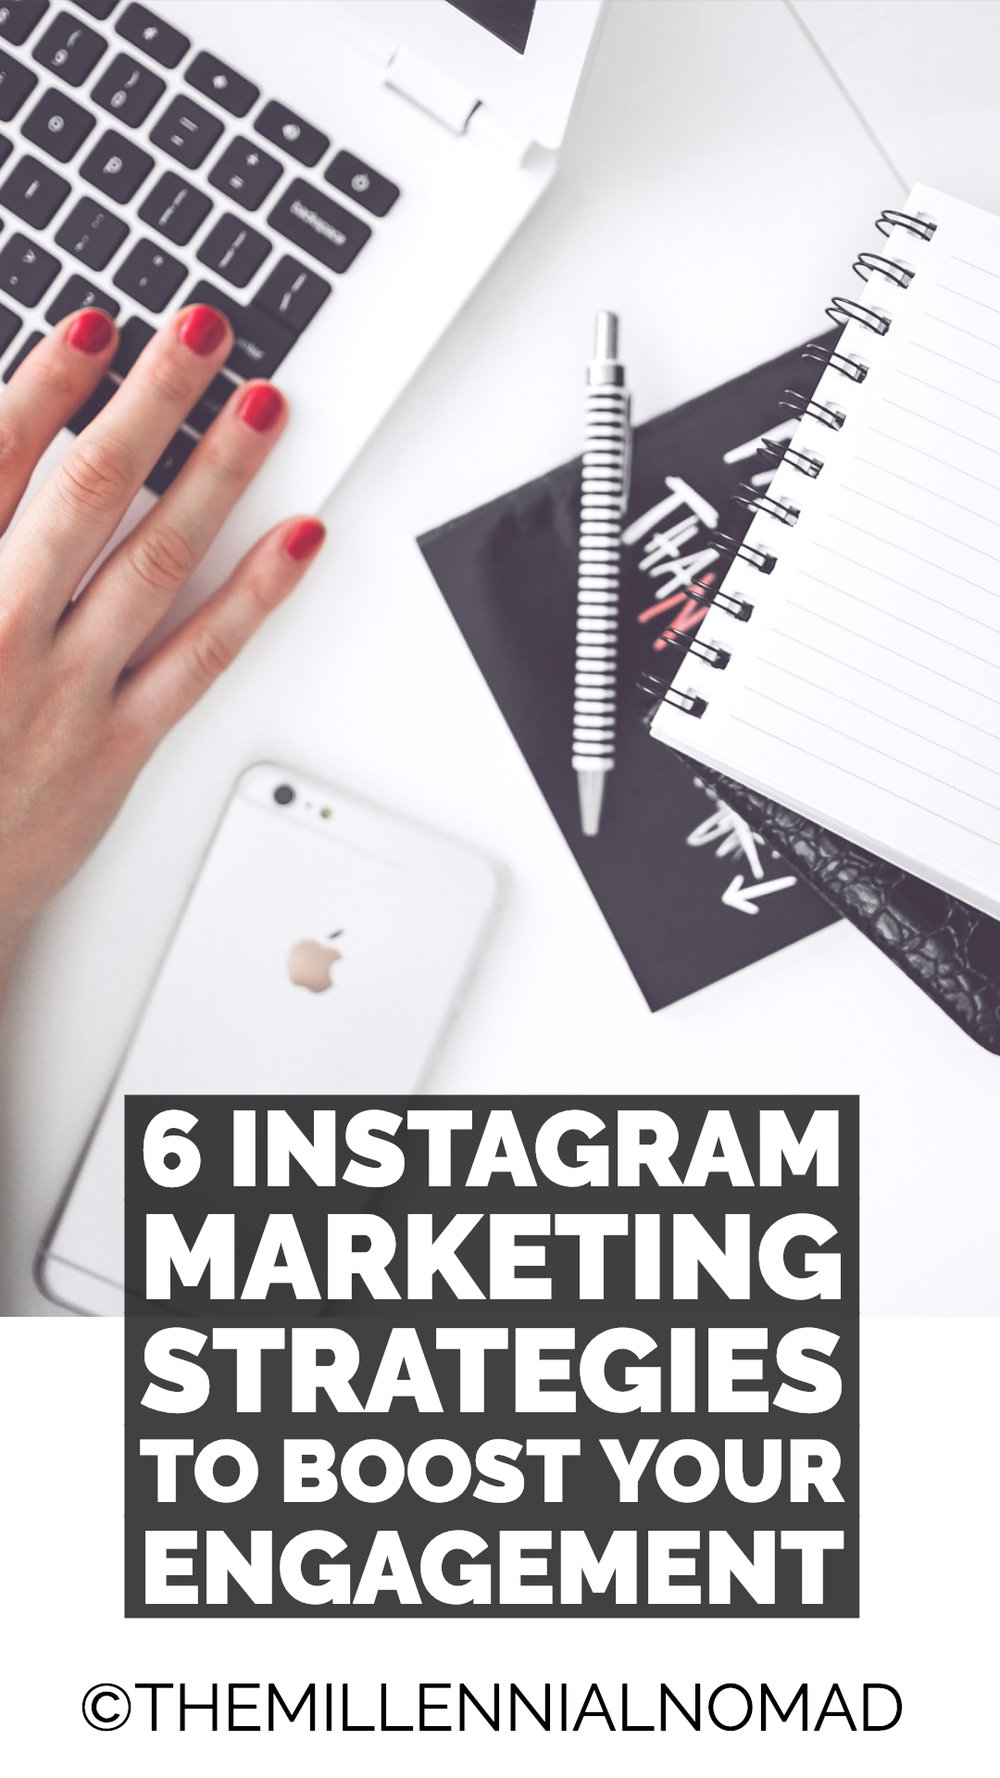 Instagram has been the best platform for me since I started my online business. People often do not believe that it is possible to earn a living from working online and posting photos on Instagram. And the reason is that they only consider it as a hobby.  But when you know how to leverage the full potential of social media and consider it a business rather than a hobby, you will then be able to design the life you have always dreamed of. Using Instagram, the right way, for your online business has many benefits: